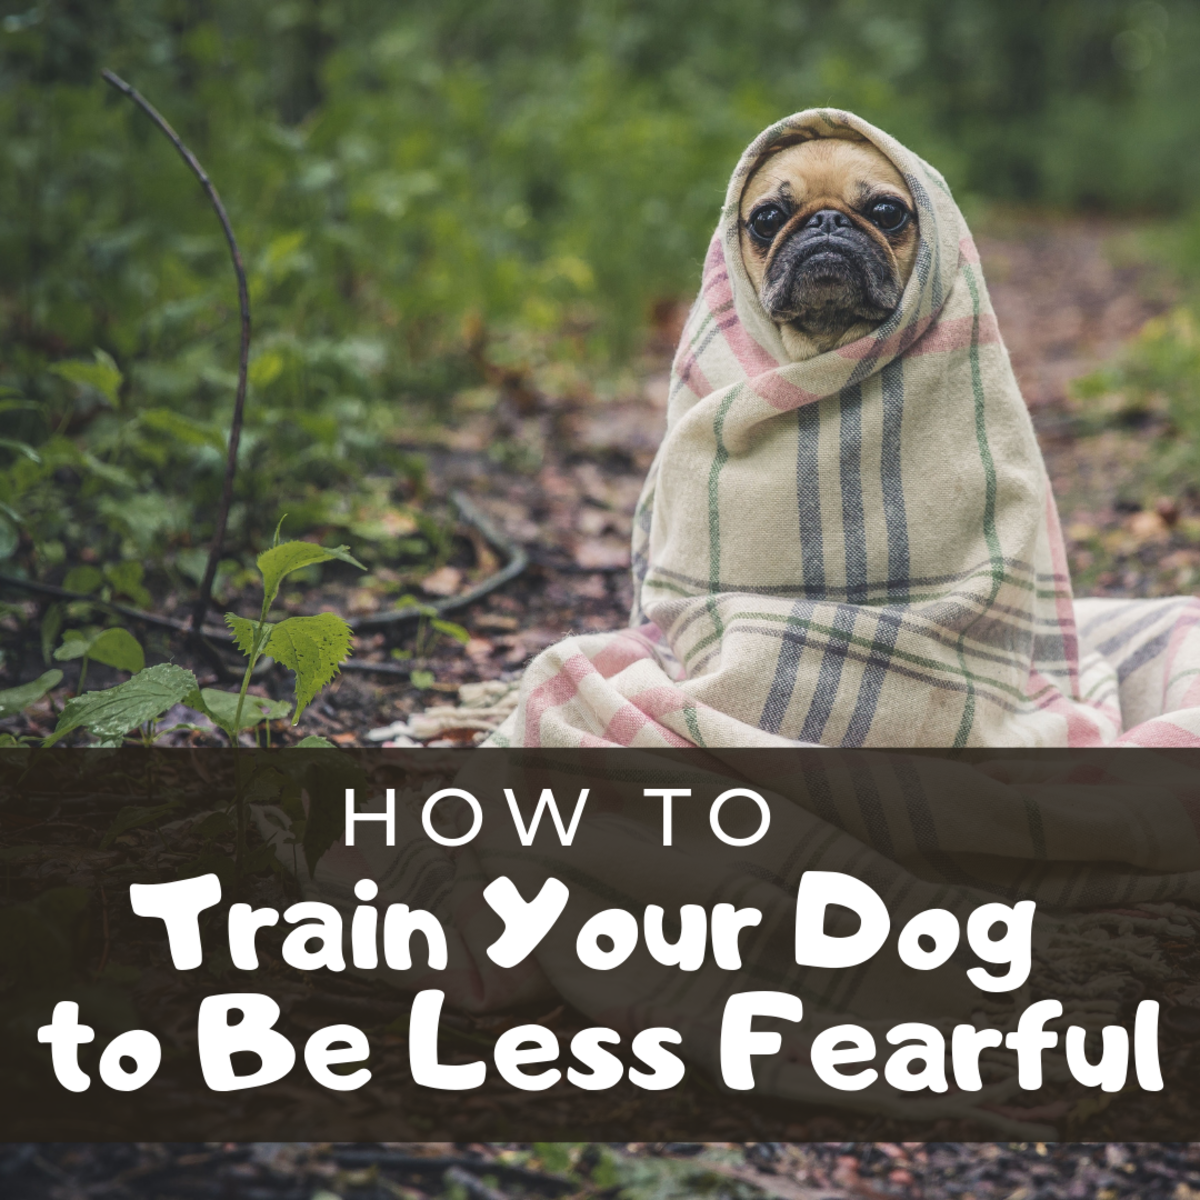 Can You Reinforce Your Dog's Fear?